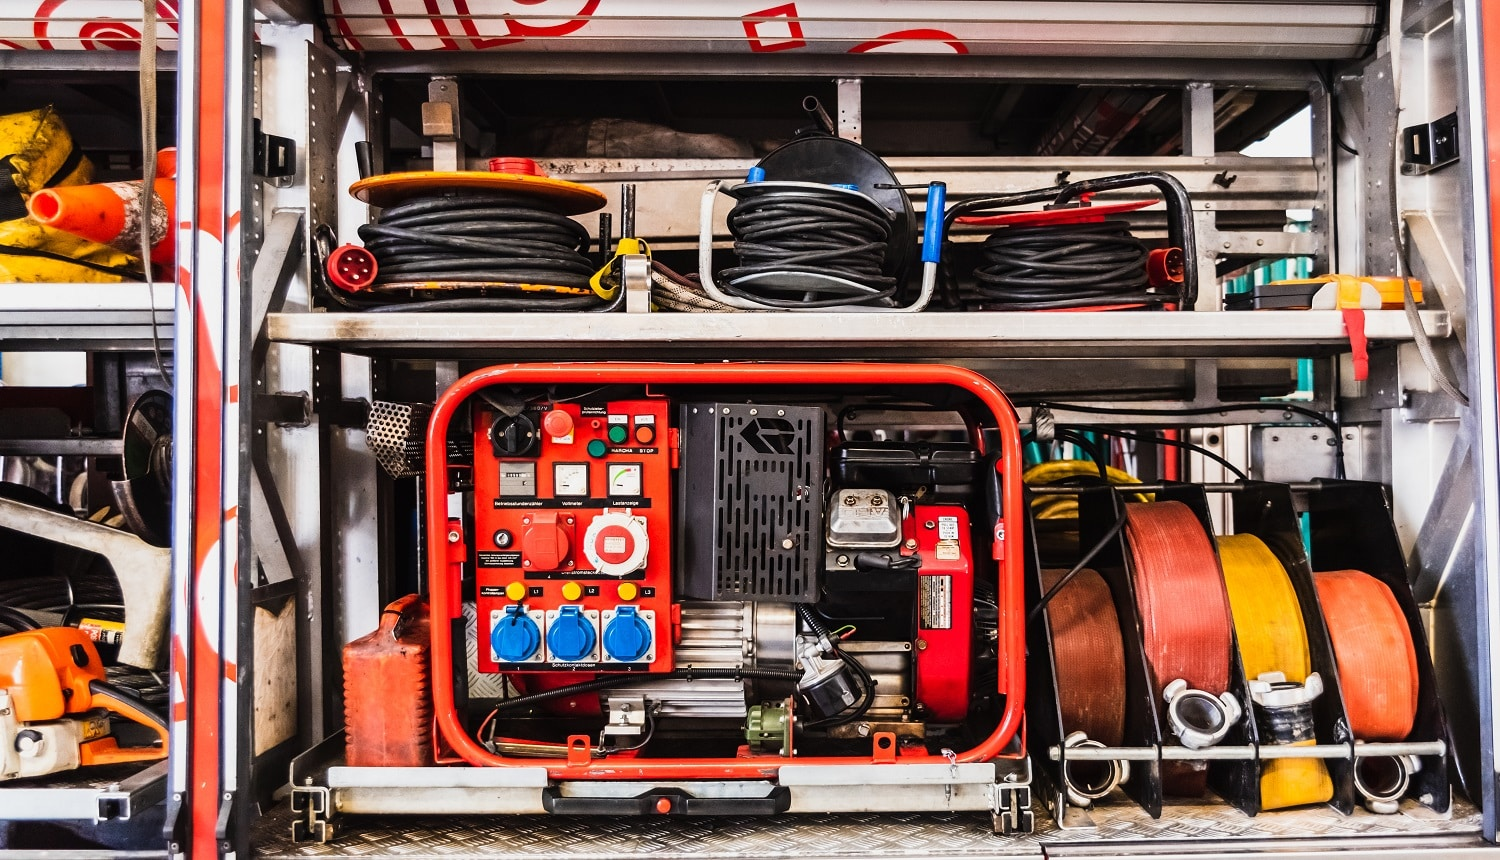 Emergency material of a fire truck, with generator set and hoses.